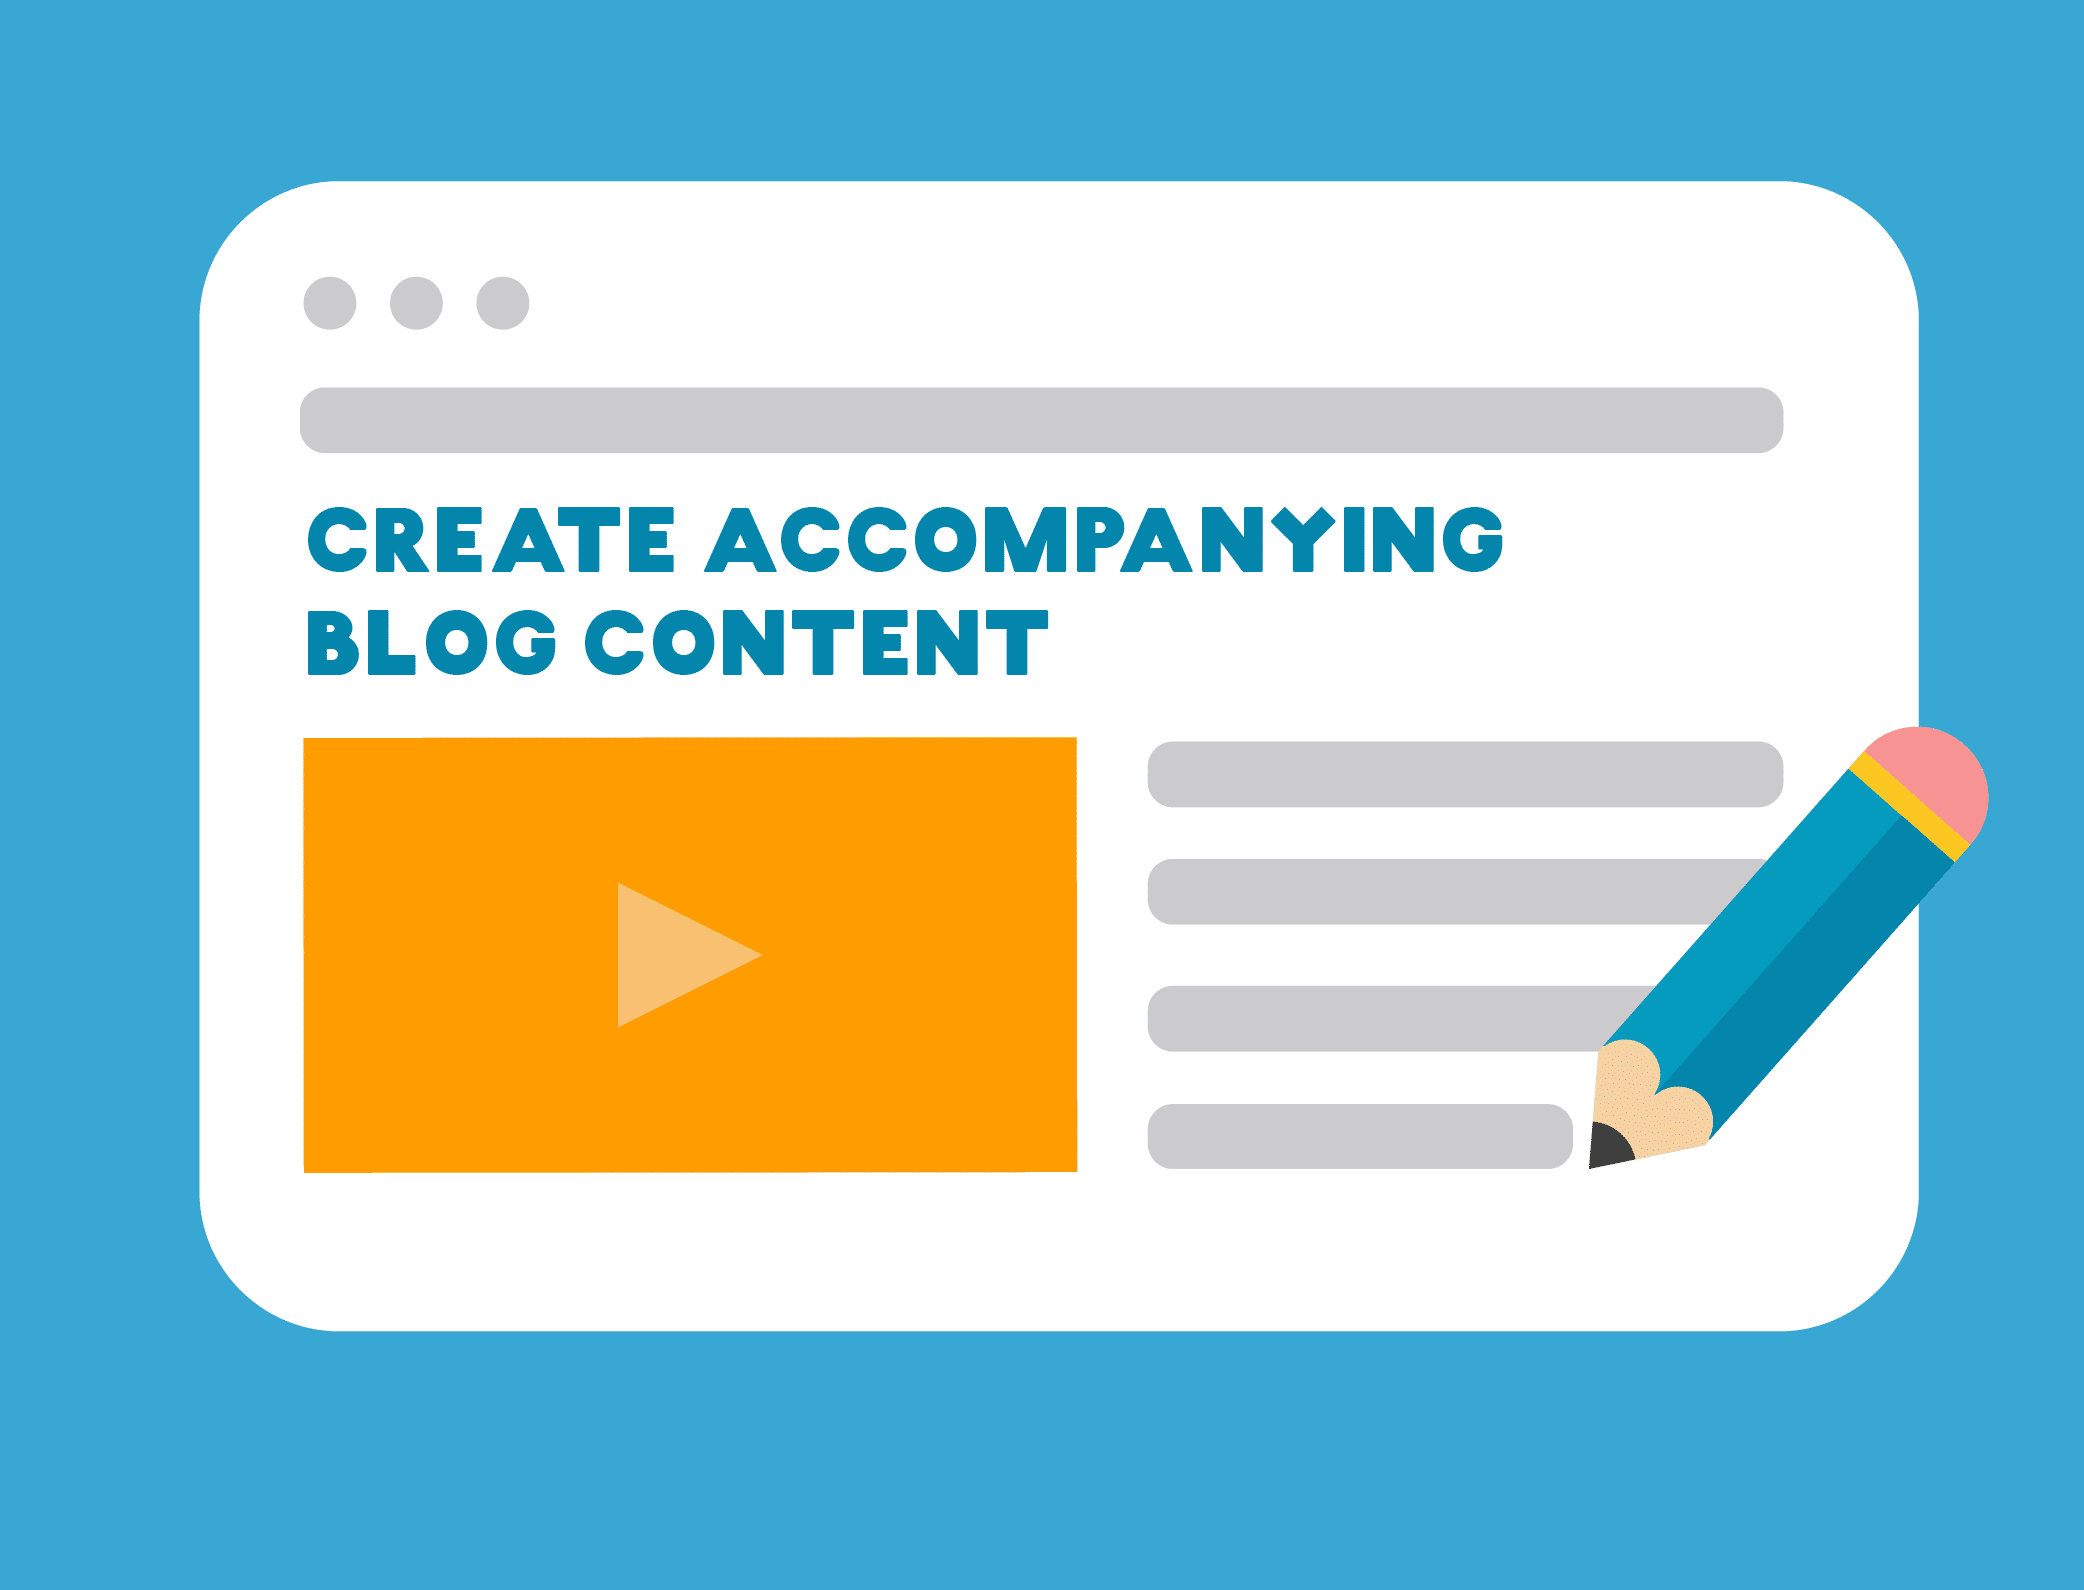 Create Accompanying Blog Content